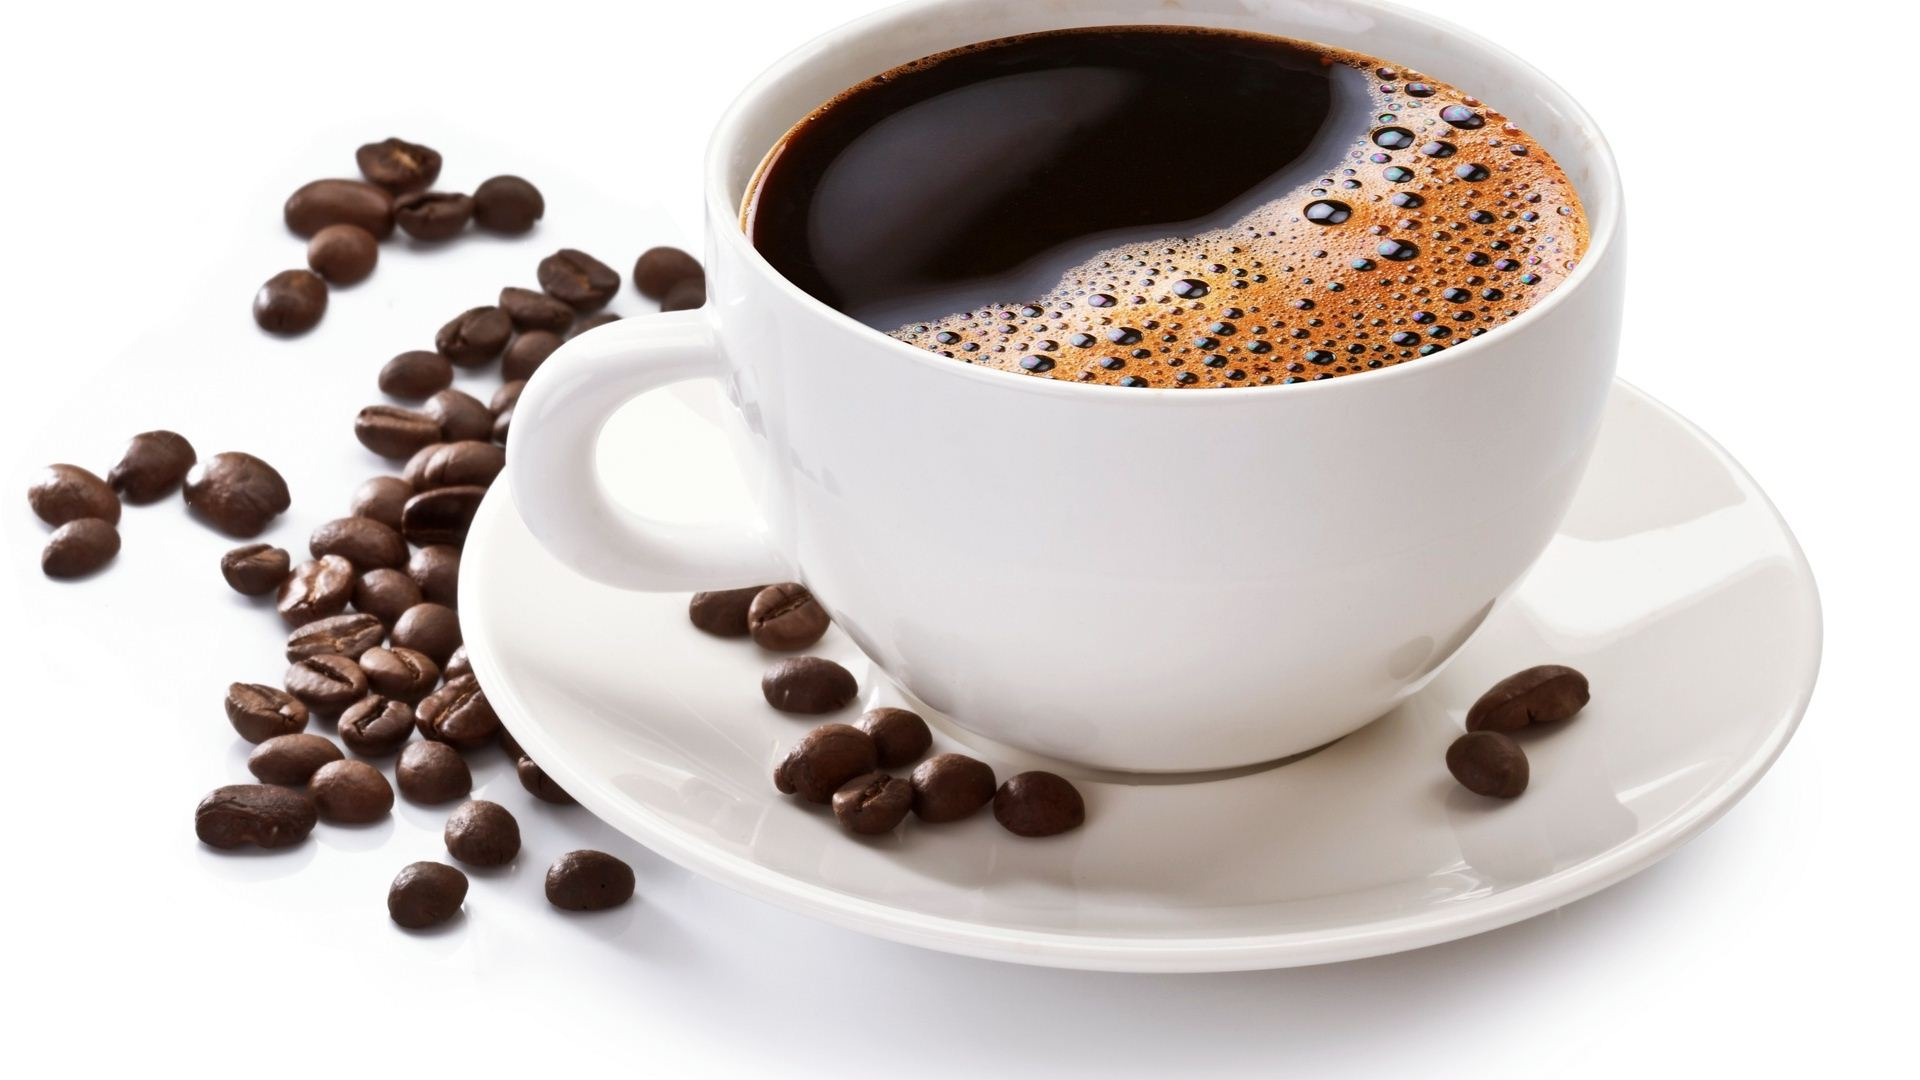 Cup Of Coffee Images: 3 To 4 Cups Of Coffee Daily Provide Most Health Benefits